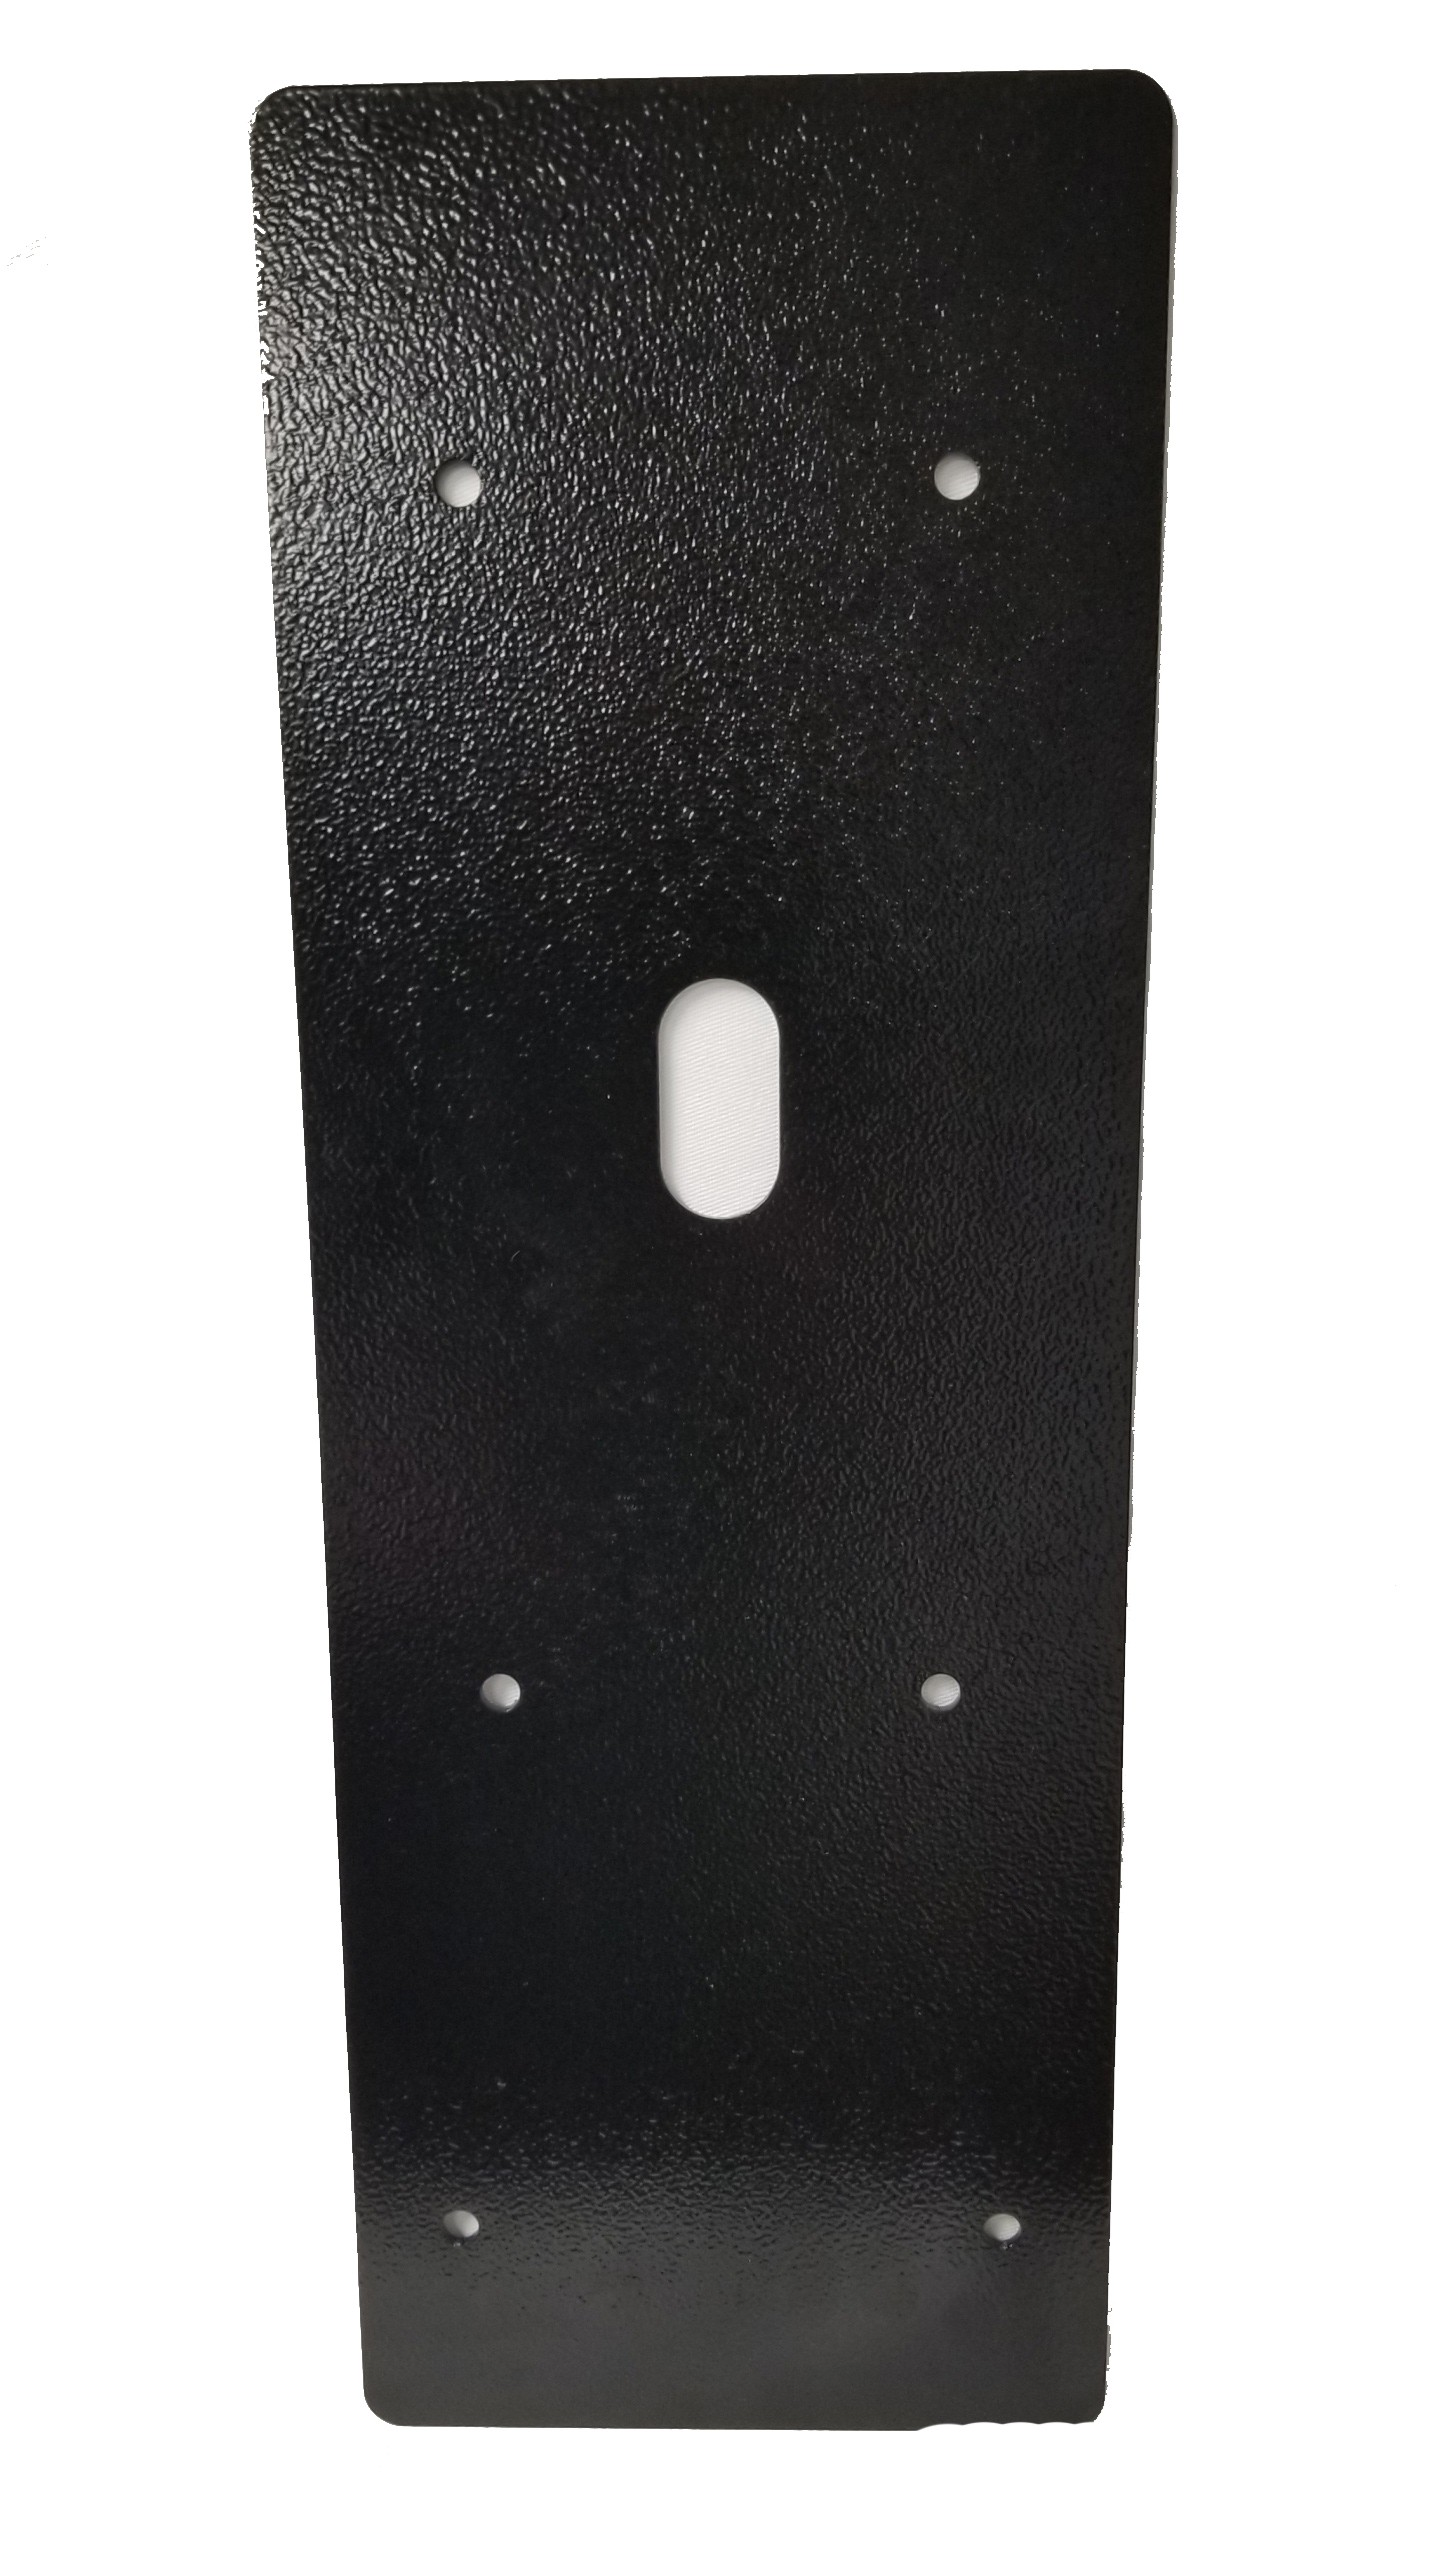 Backboard Cover - Adaptor Plate